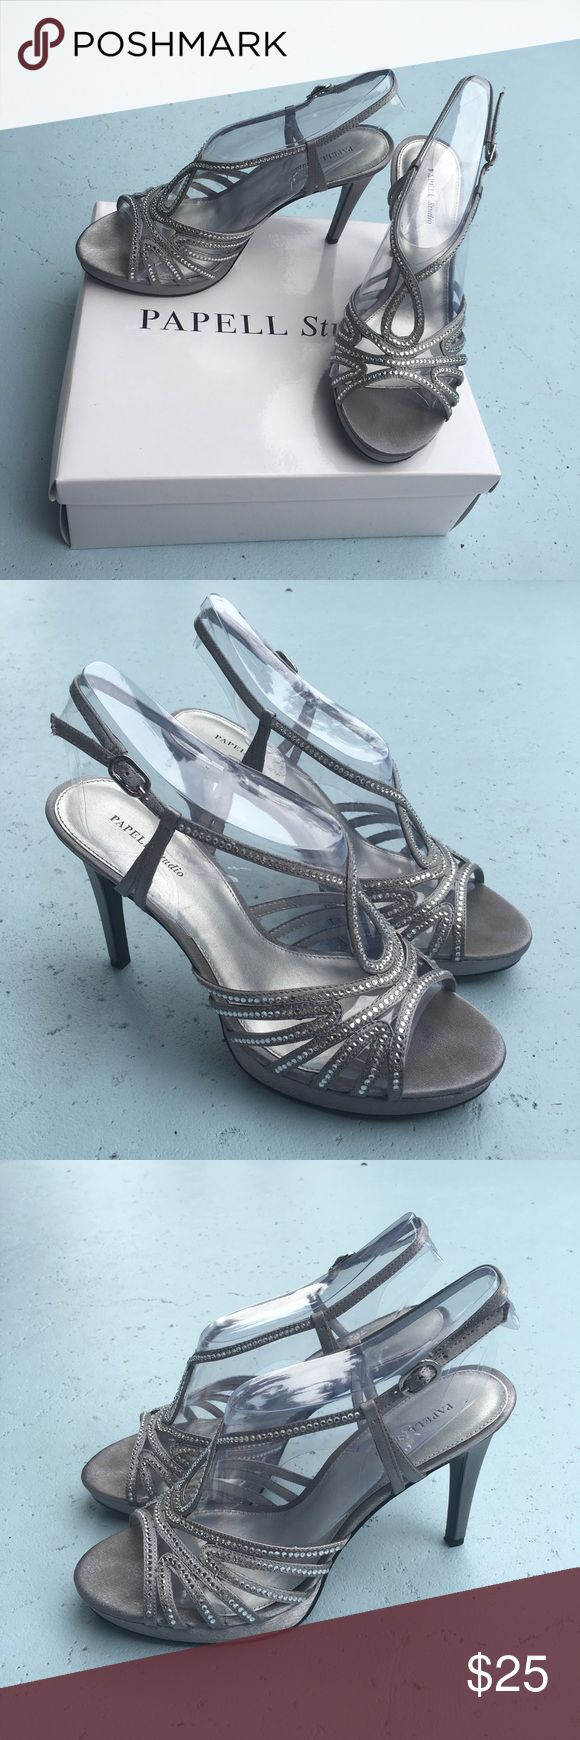 Silver heels Silver Papell heels. Worn once for prom, perfect for prom or formals. Very easy to walk in and comfortable, heel is 3 inches. Size 8.5 but I'm normally an 8 and these fit perfectly Papell Boutique Shoes Heels